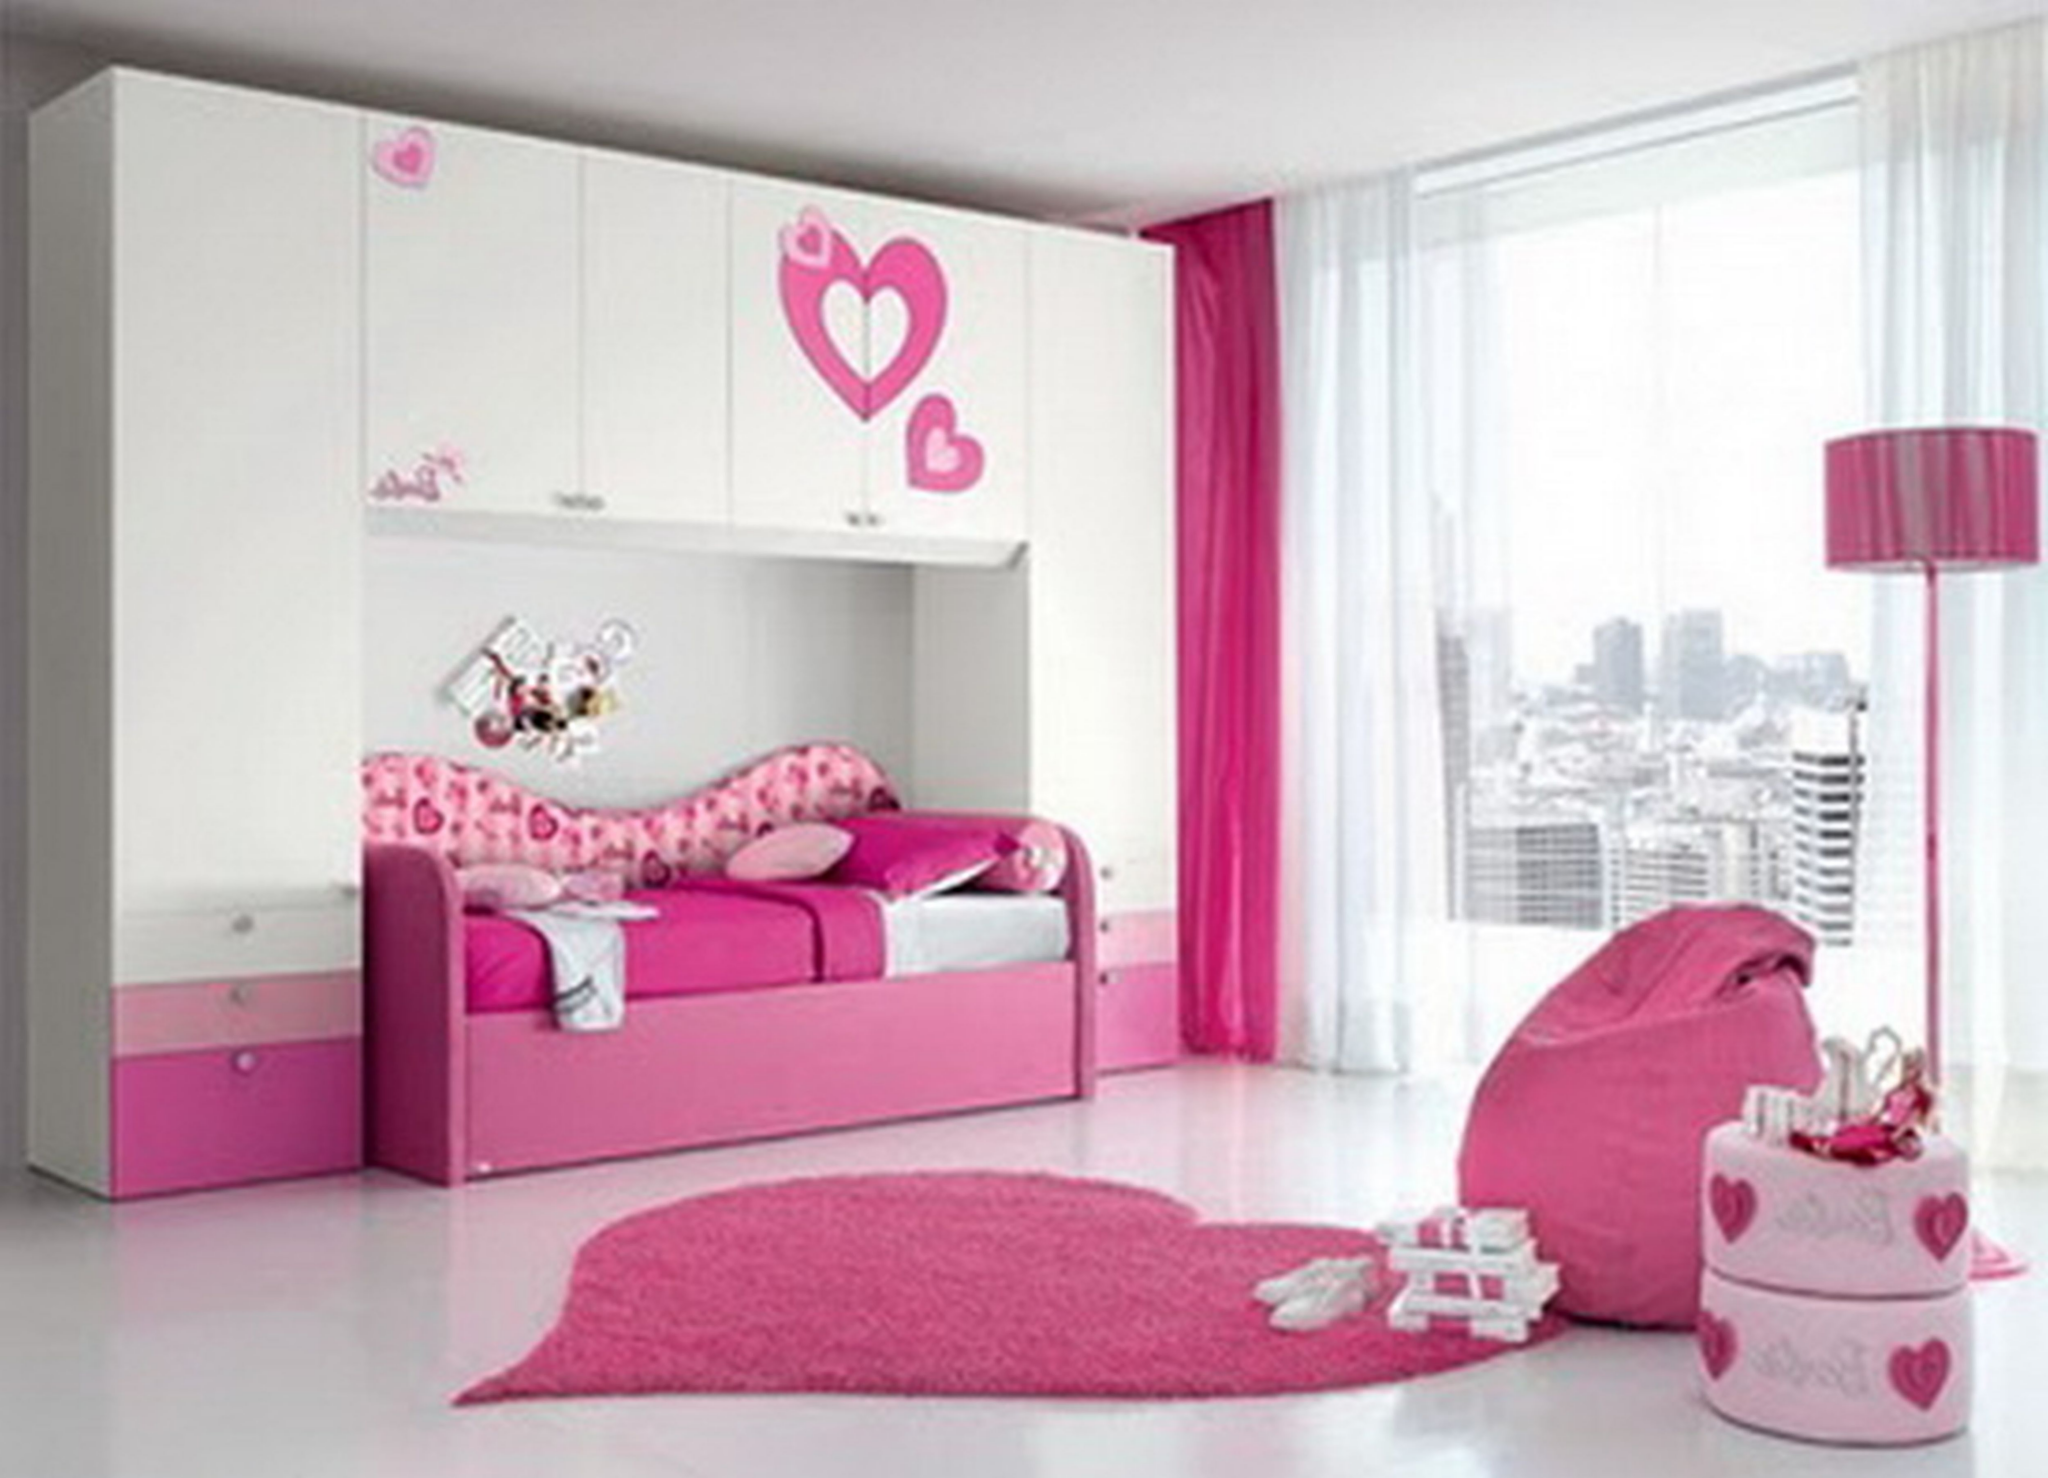 Best decor ideas for girl kids room wendy peterson - Best living room furniture for kids ...